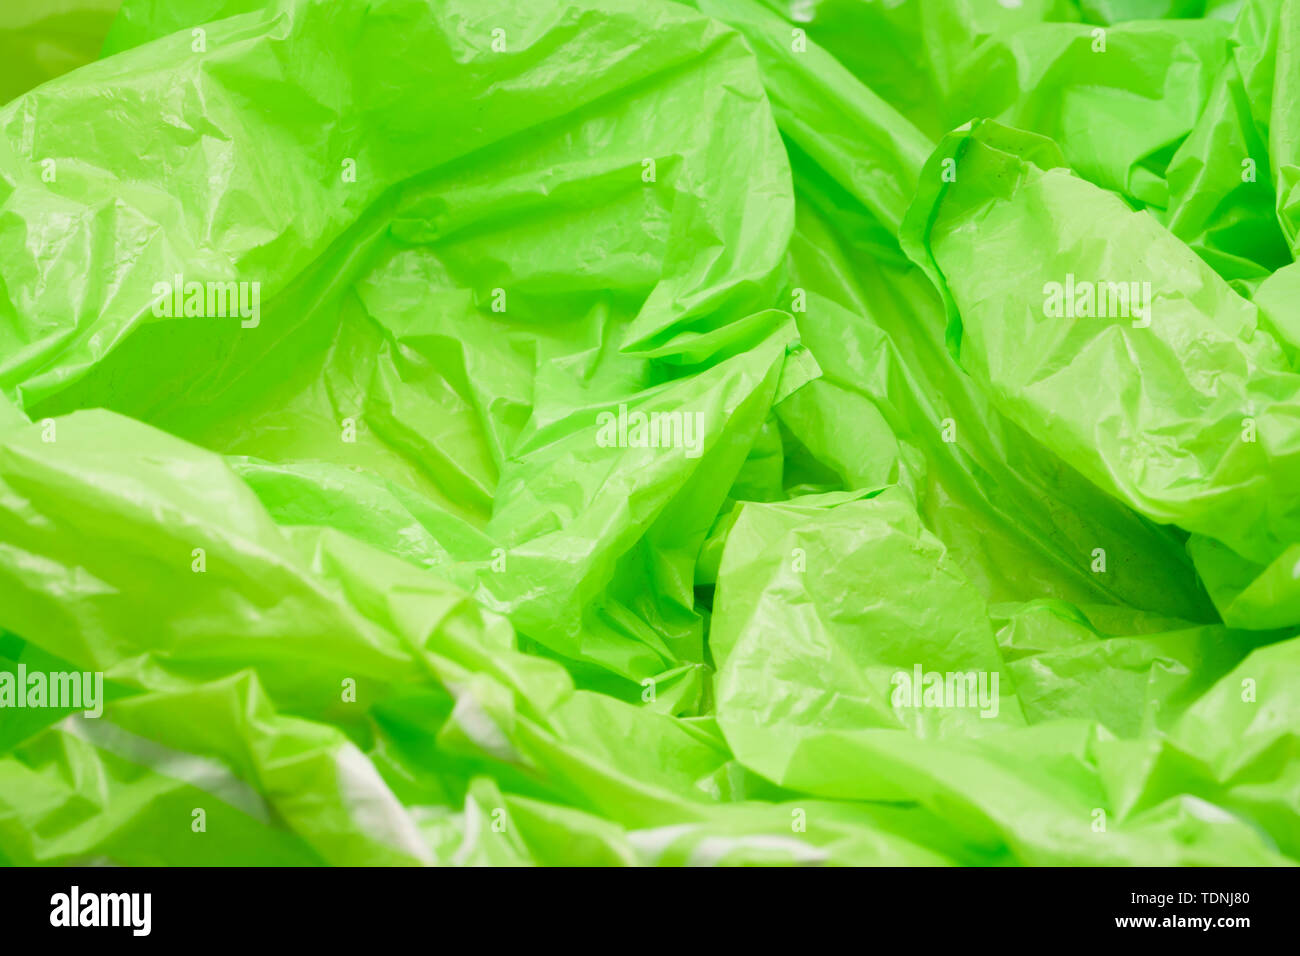 Green Plastic Bag Texture. Abstract Wrinkled Background of Plastic Garbage - Stock Image